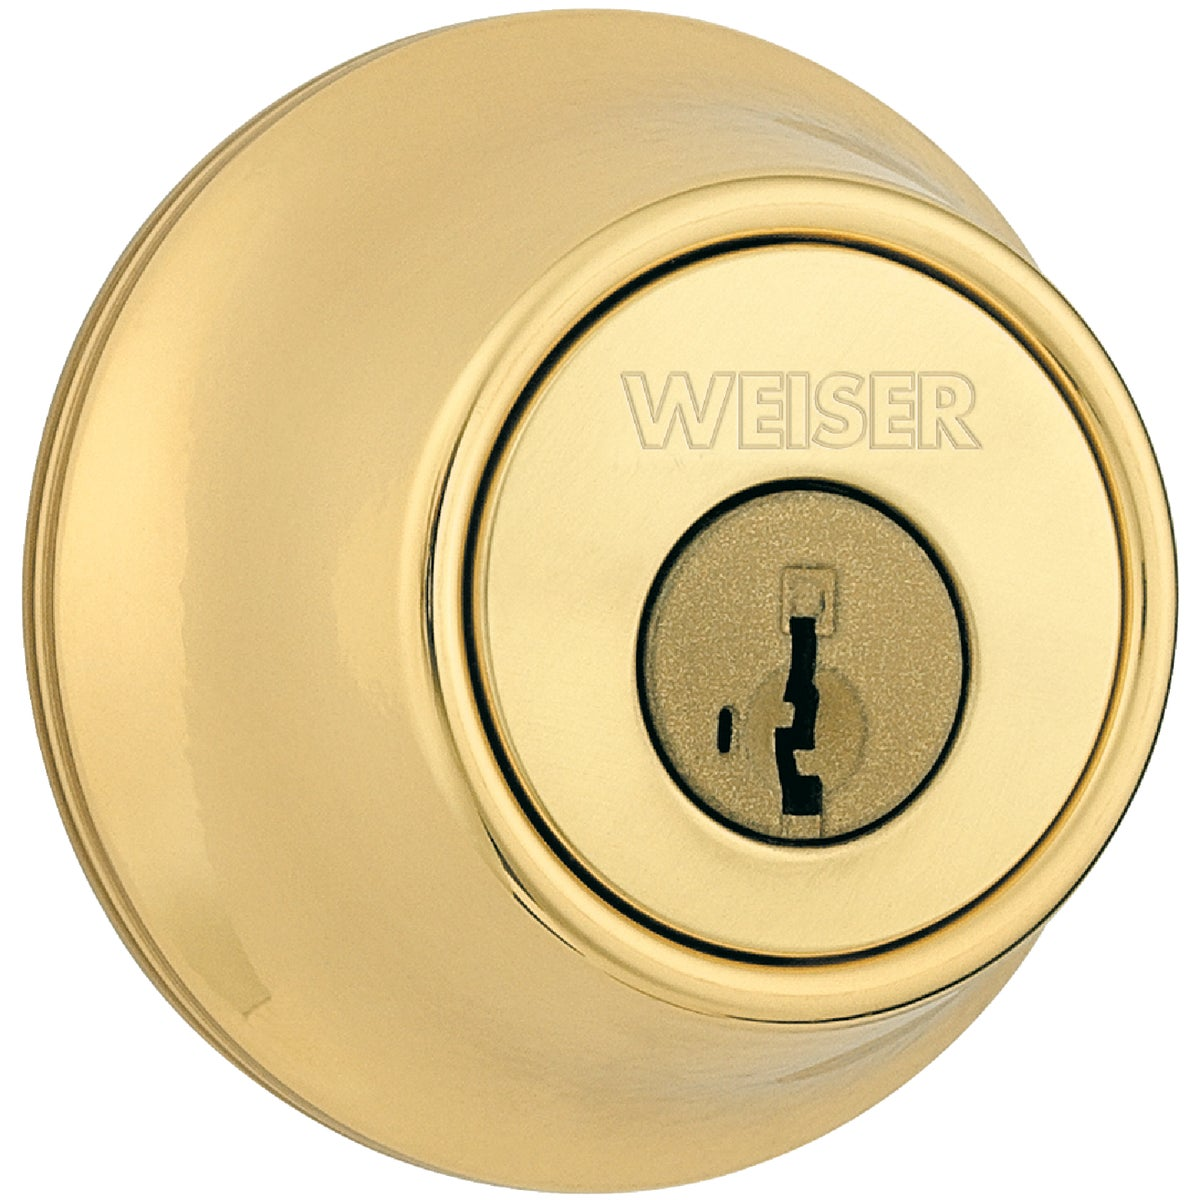 "Item 202952, Visual packaging. Weiser Elements brand. Single cylinder deadbolt has key access on the outside and turn piece on the inside of the deadbolt. Equipped with a full 1"" throw."